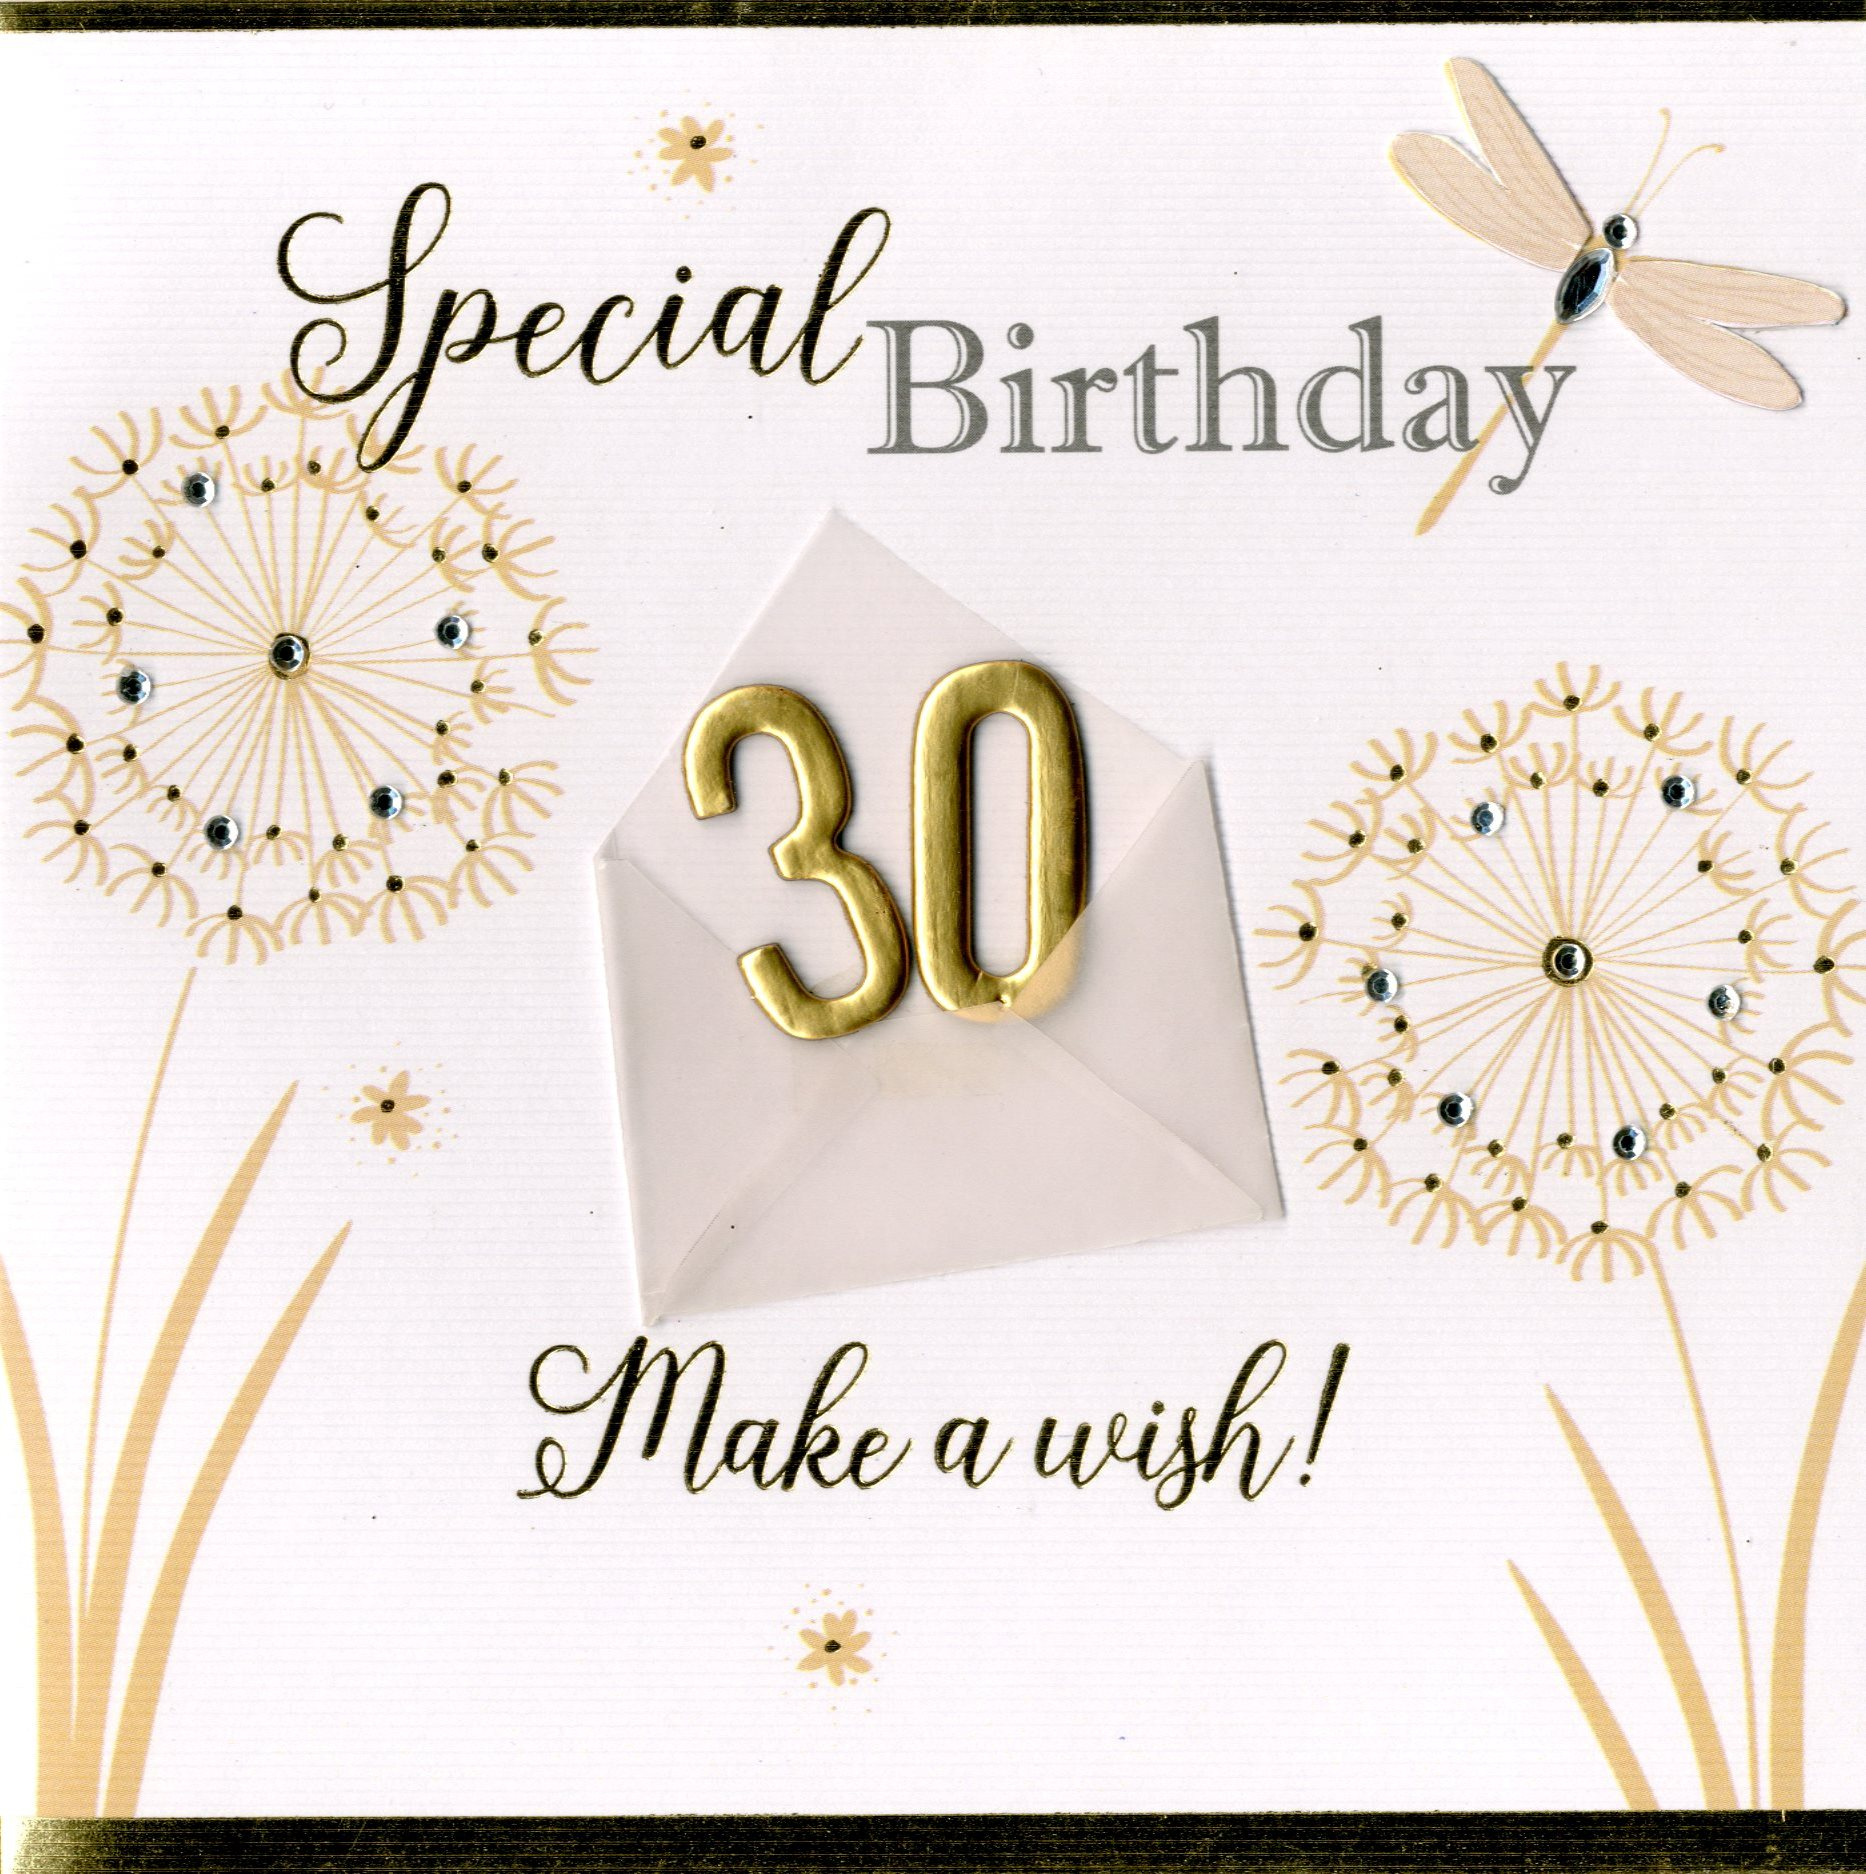 30th birthday greeting cards ; NH041